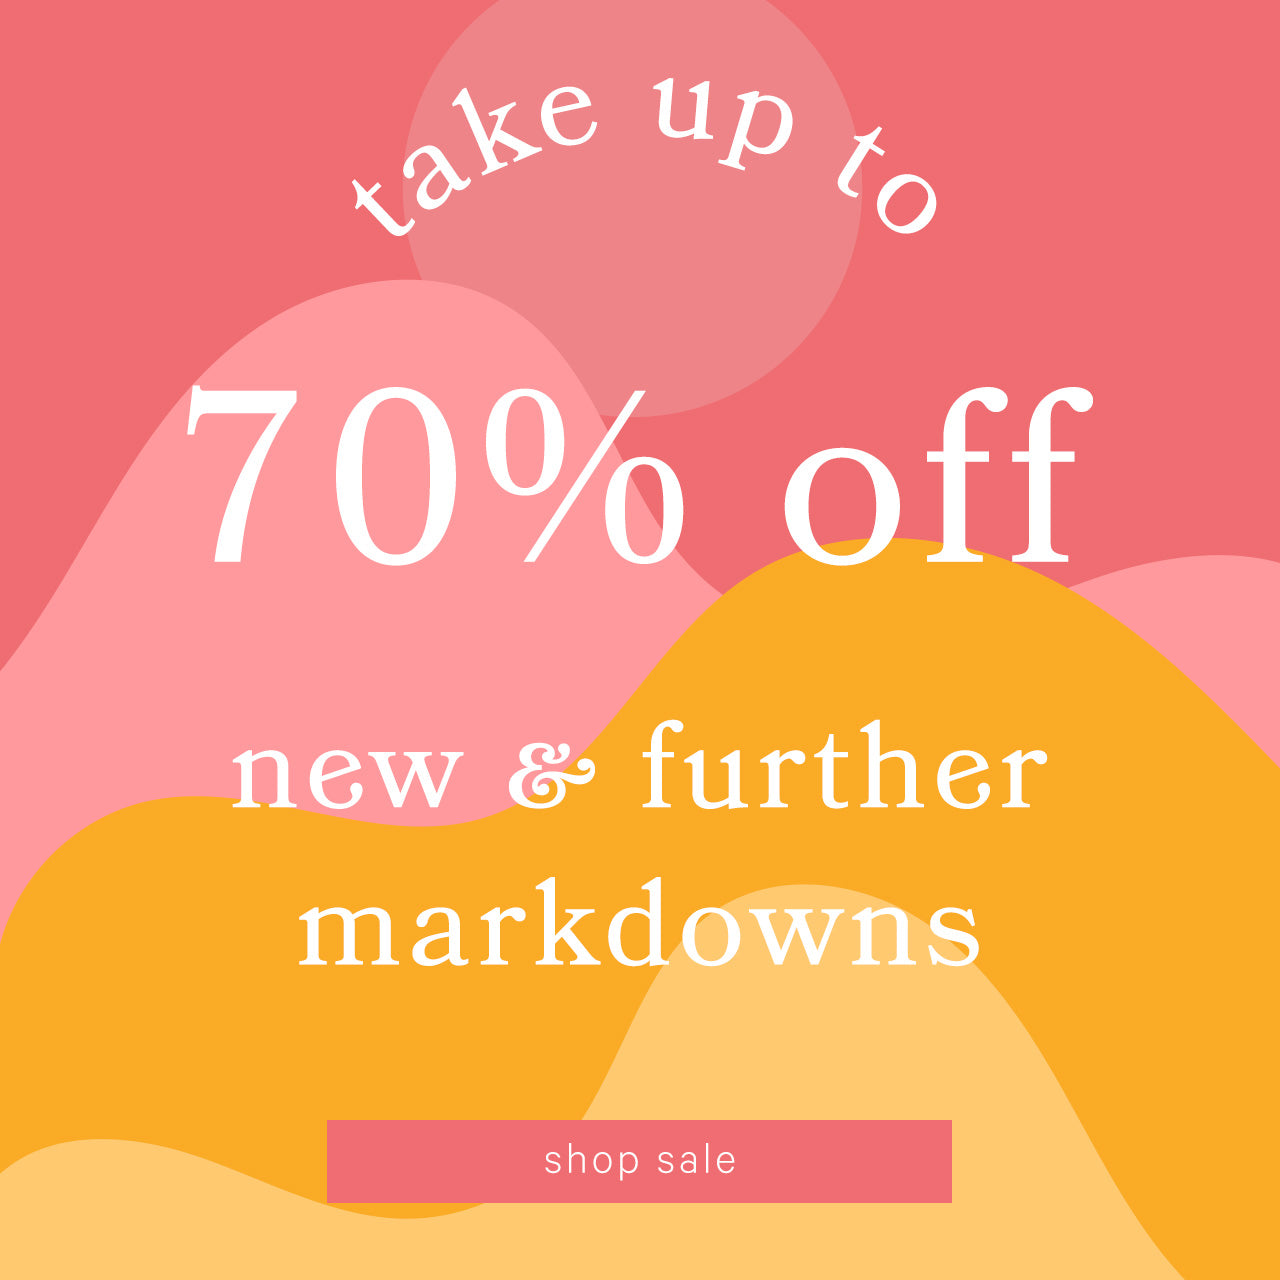 Unique Vintage — Shop New Markdowns up to 70% off